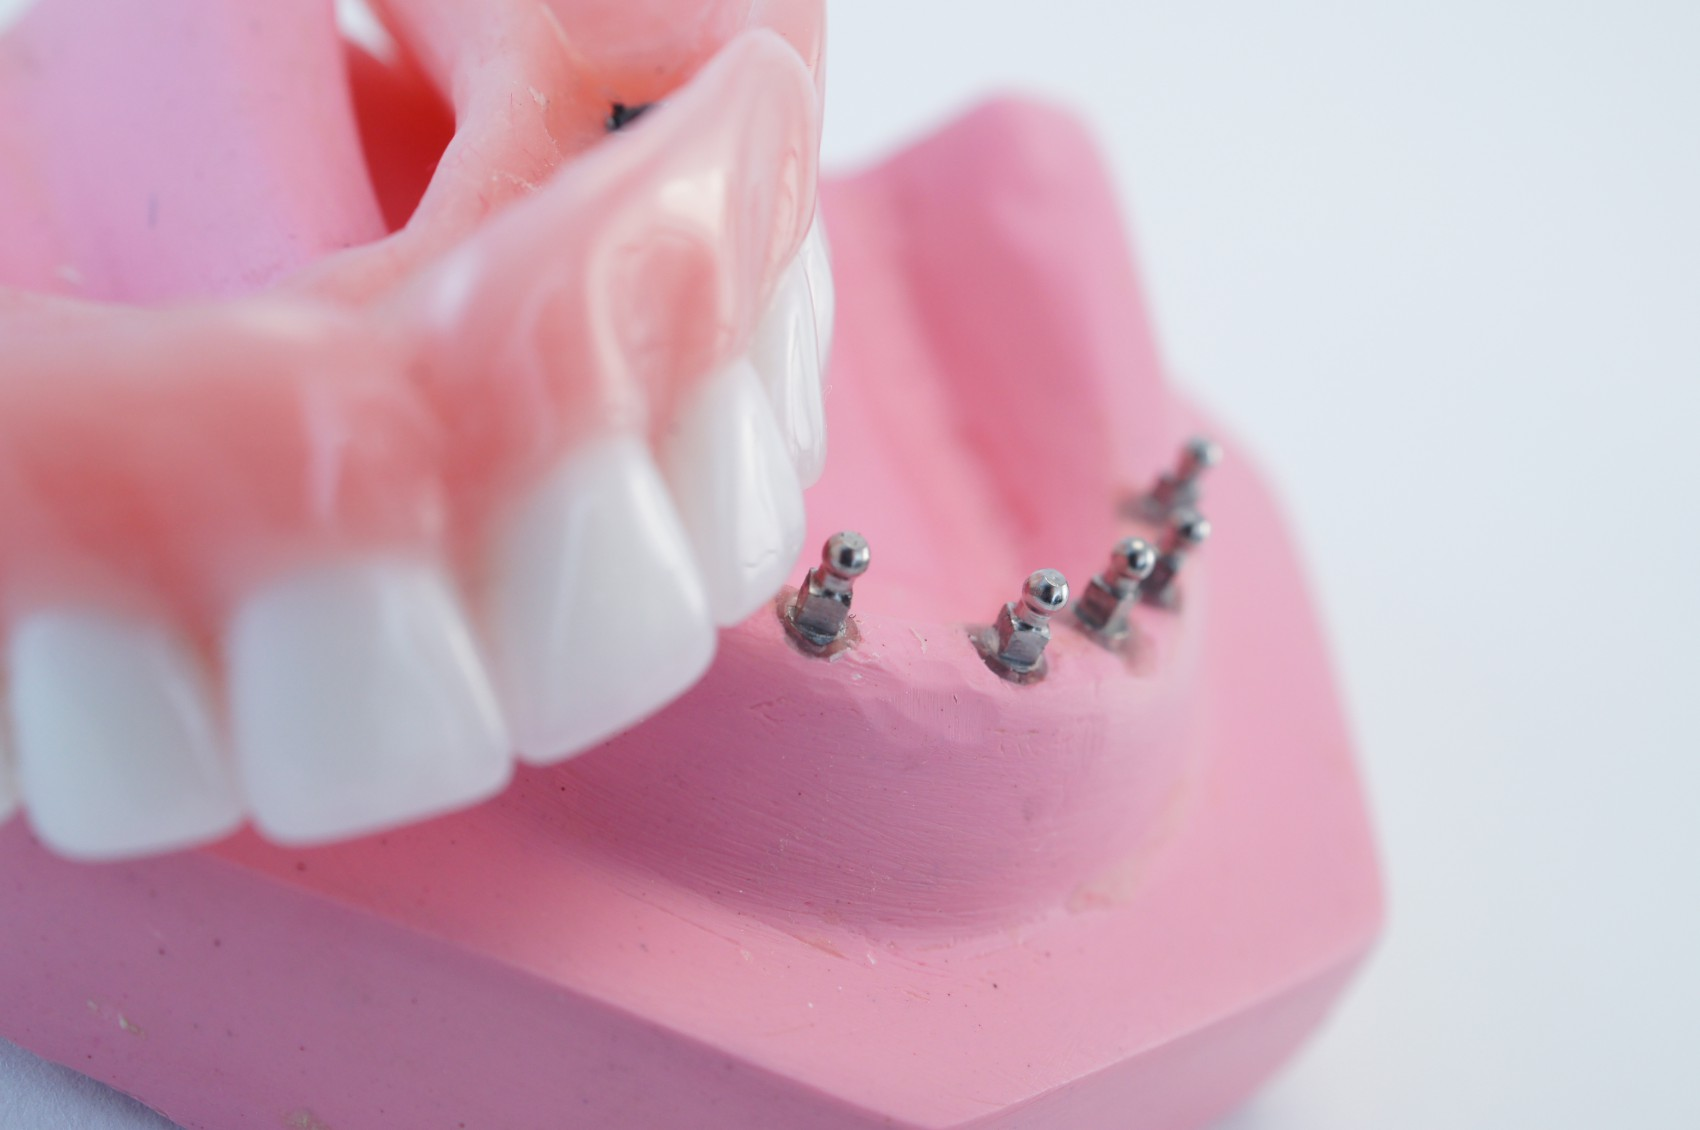 Cheap mini implants and Snap in Dentures